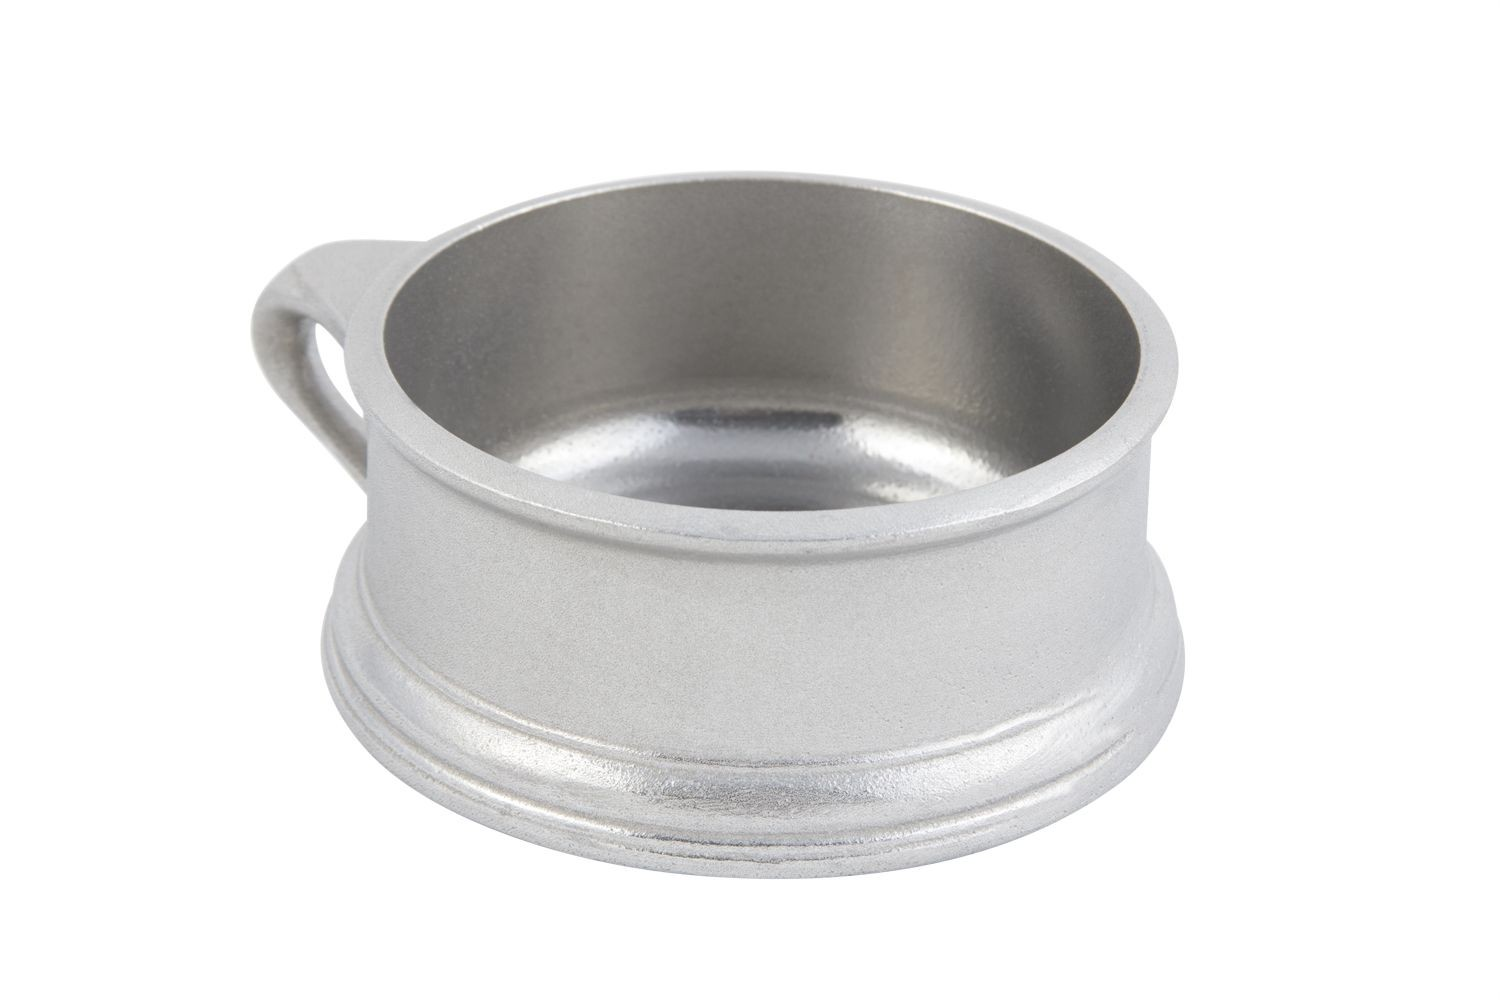 Bon Chef 3013P Soup Bowl with Side Ring Handle, Pewter Glo 14 oz., Set of 6